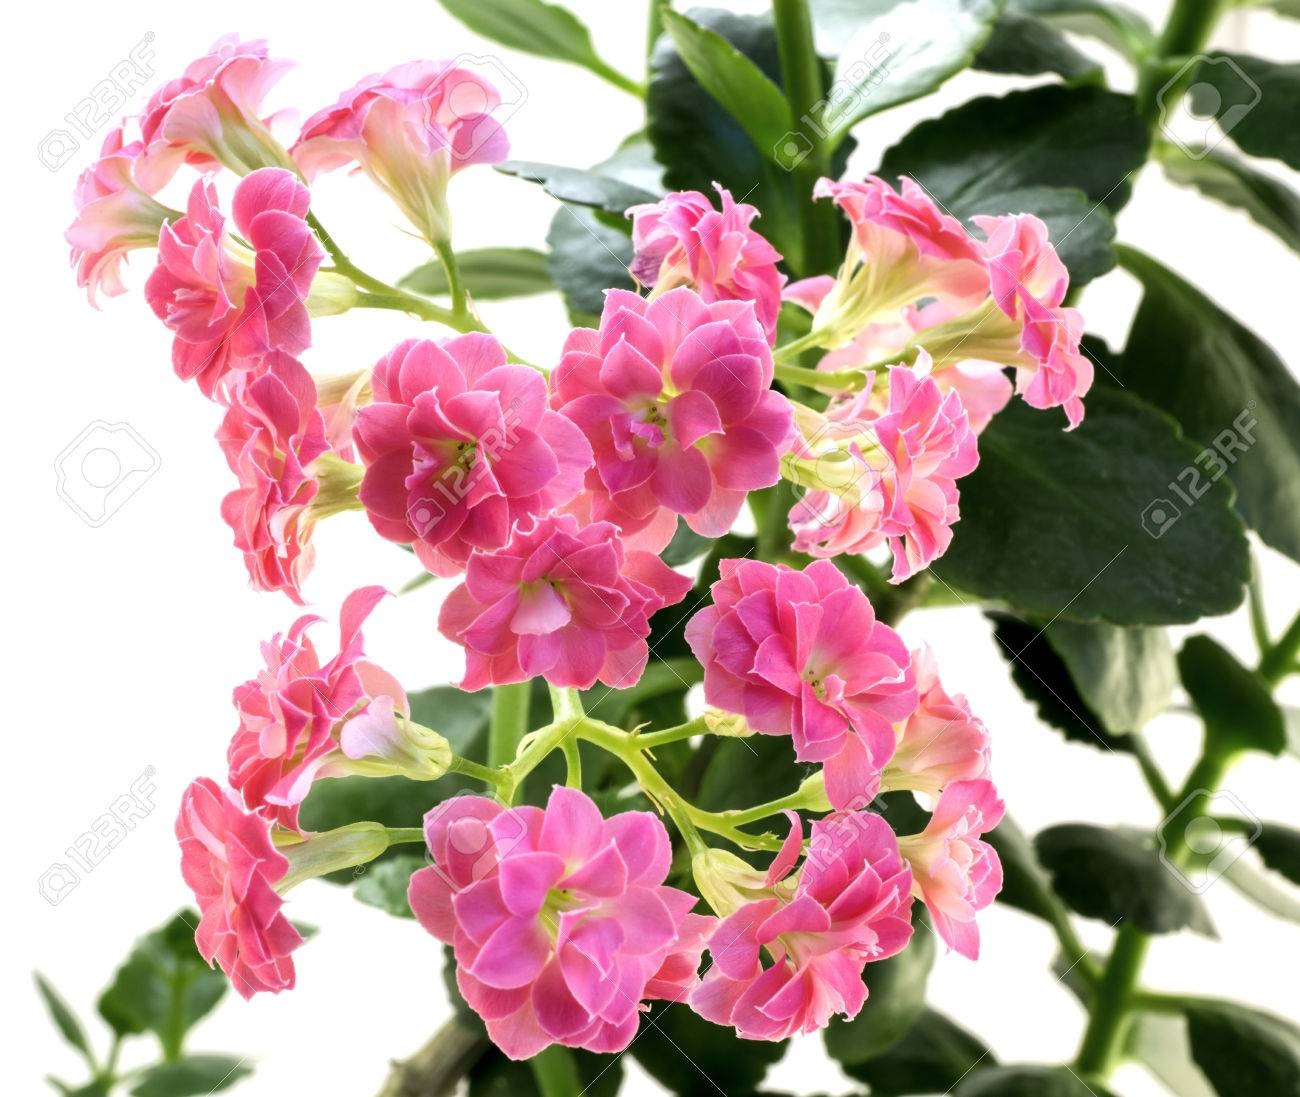 Pink flowers of kalanchoe plant with green leaves isolated on pink flowers of kalanchoe plant with green leaves isolated on white stock photo 41593361 mightylinksfo